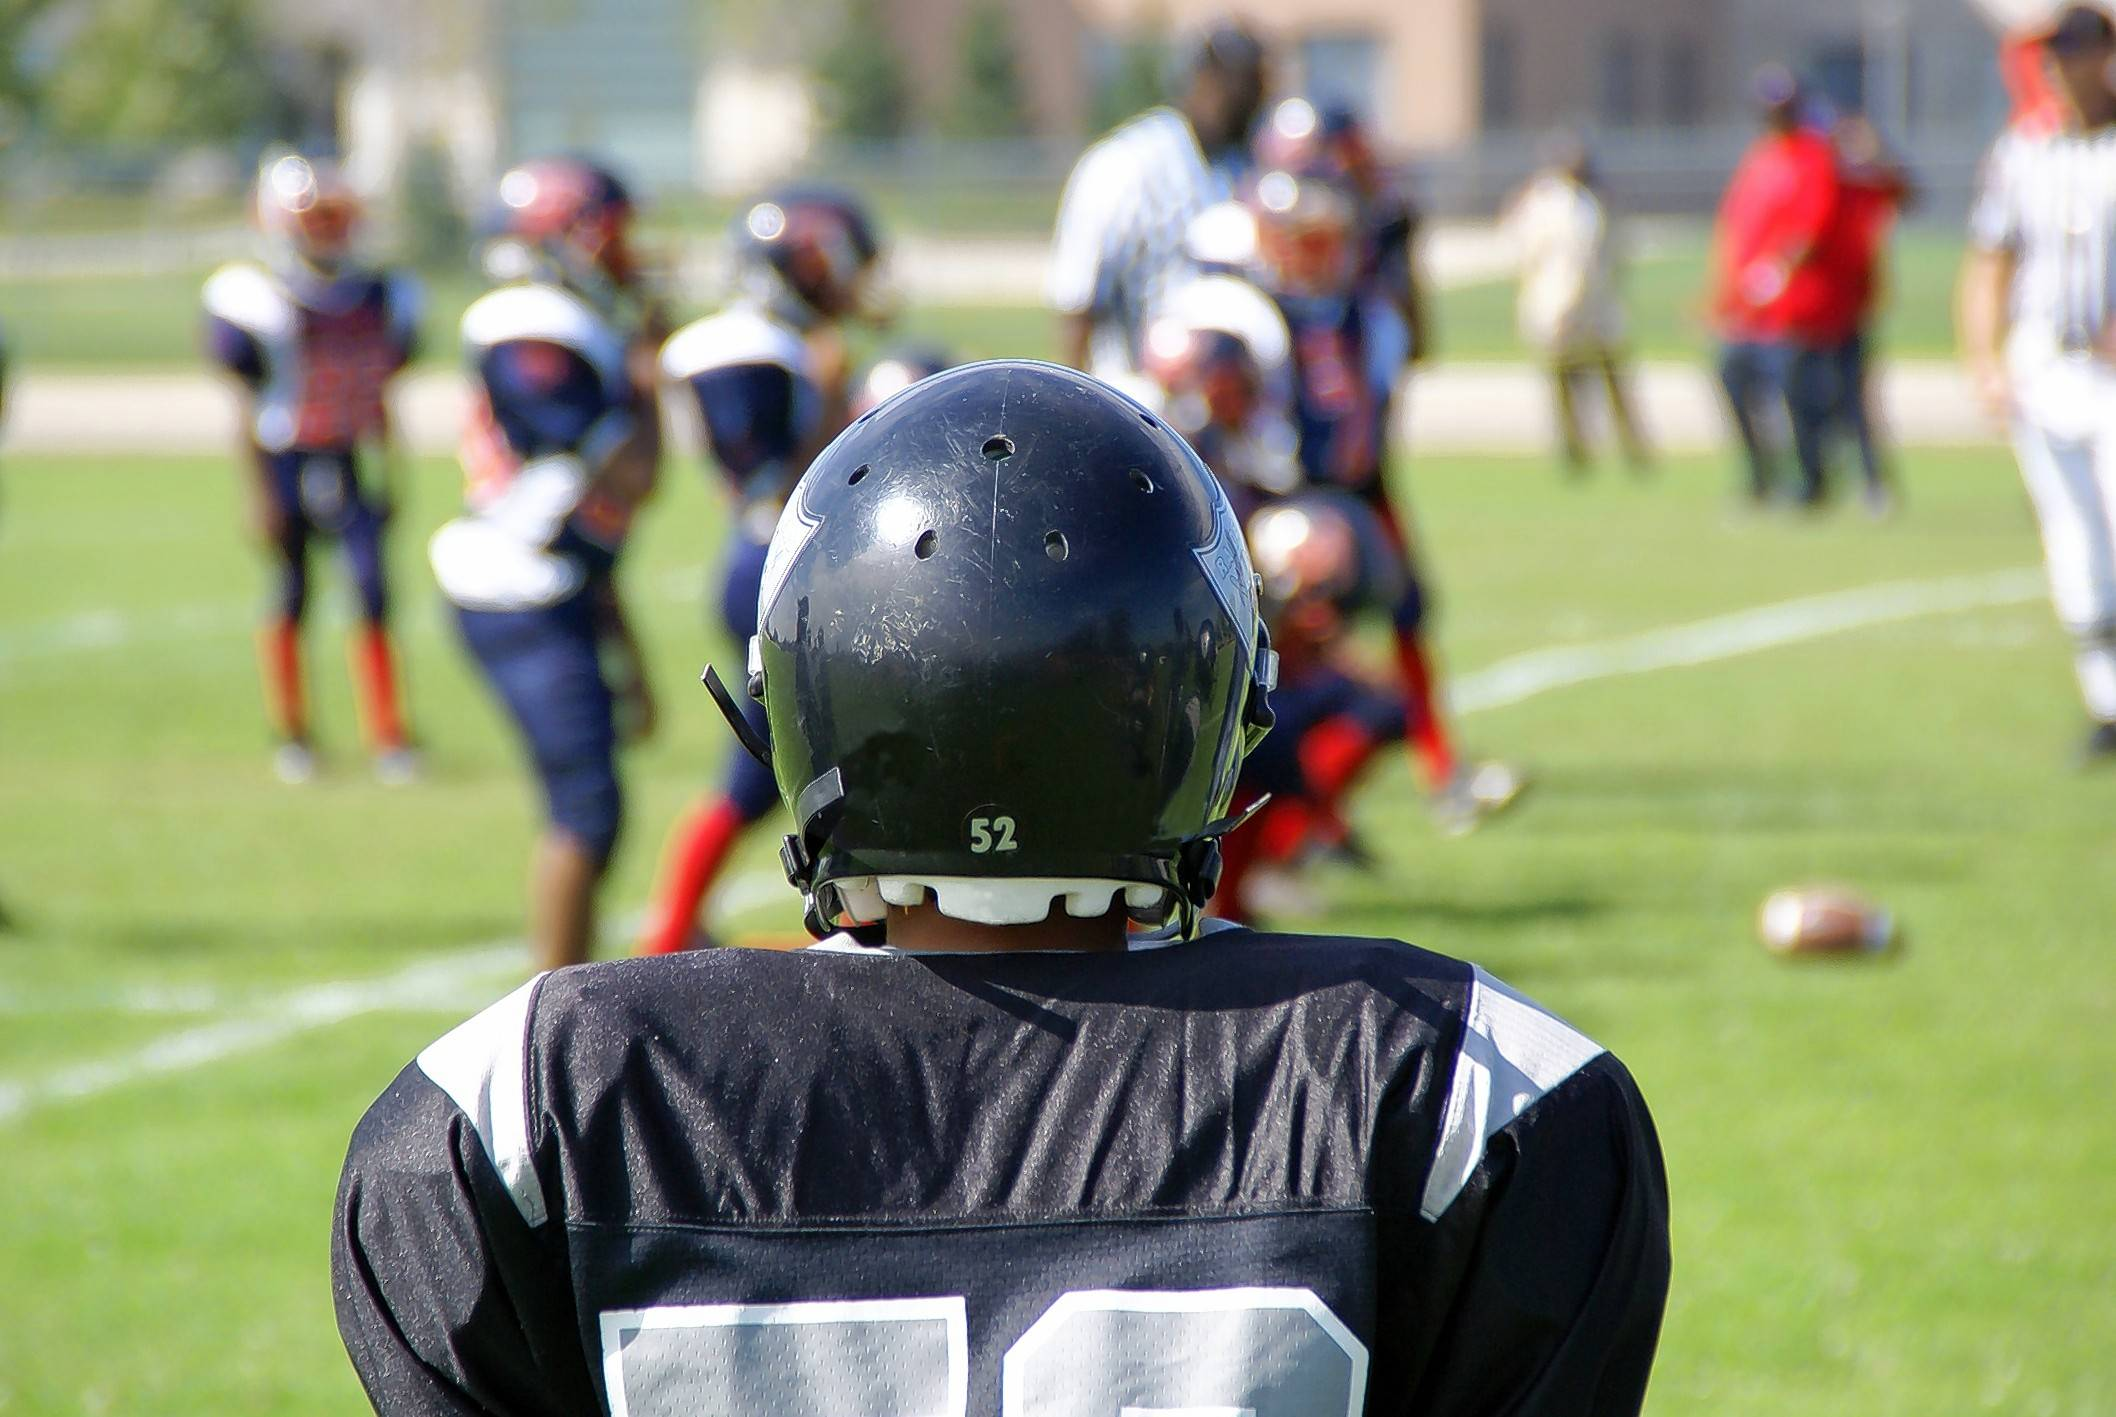 U.S.A. Football, the national governing body for amateur football, announced that they will implement changes this fall in select pilot programs to make the game safer.